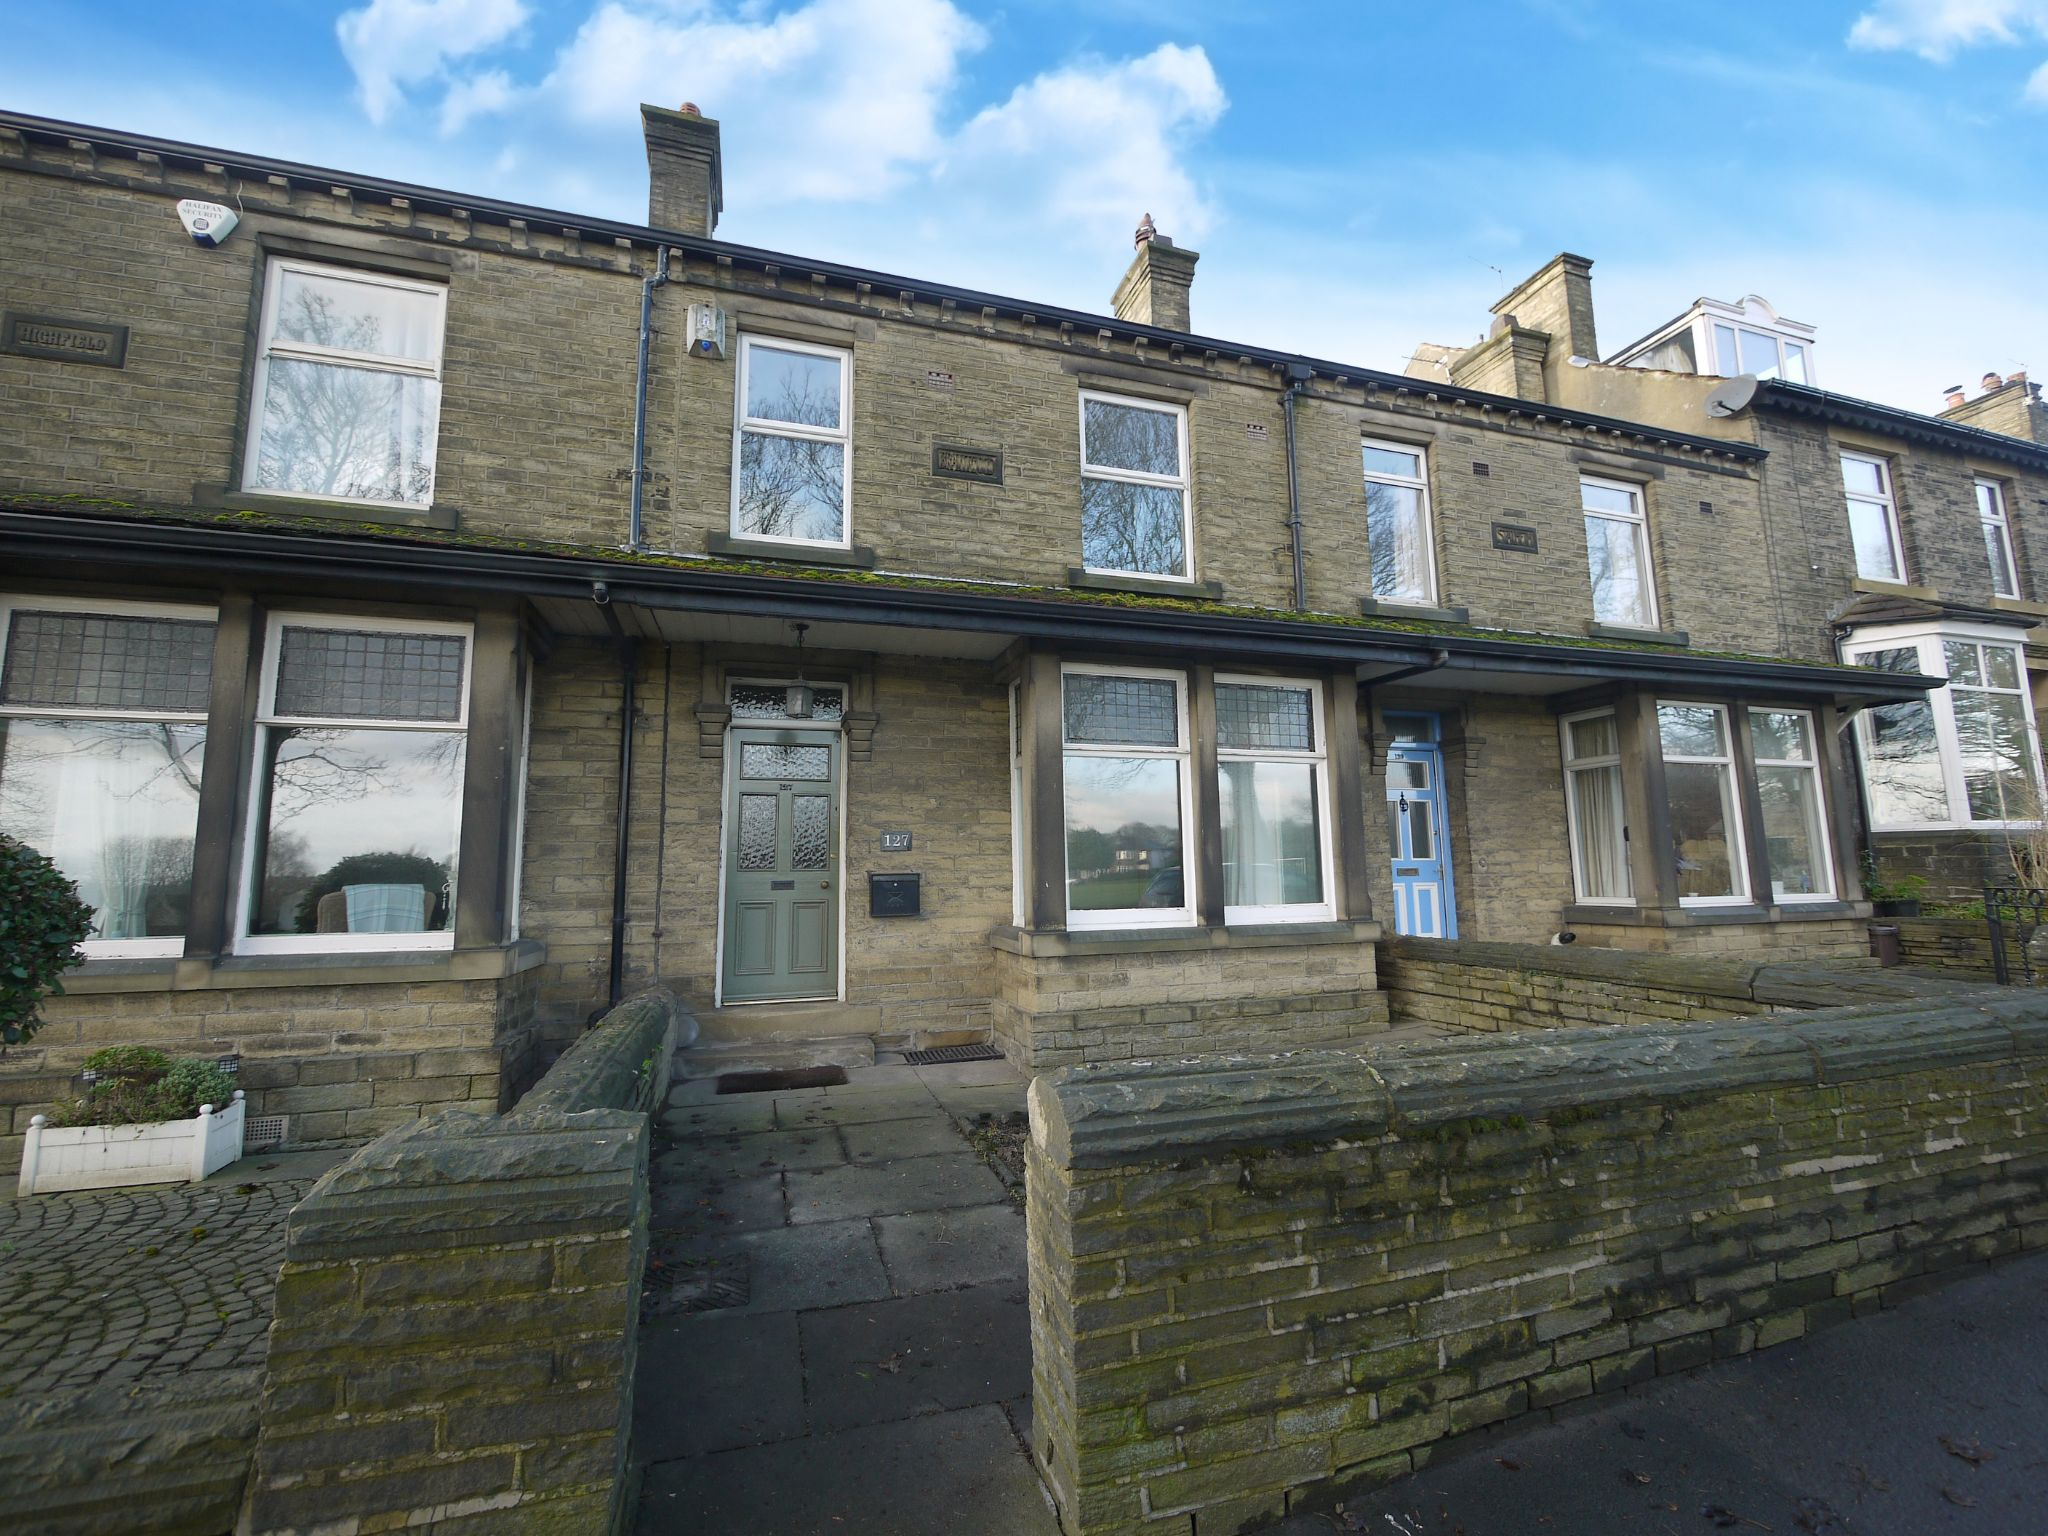 3 bedroom mid terraced house SSTC in Brighouse - Photograph 12.